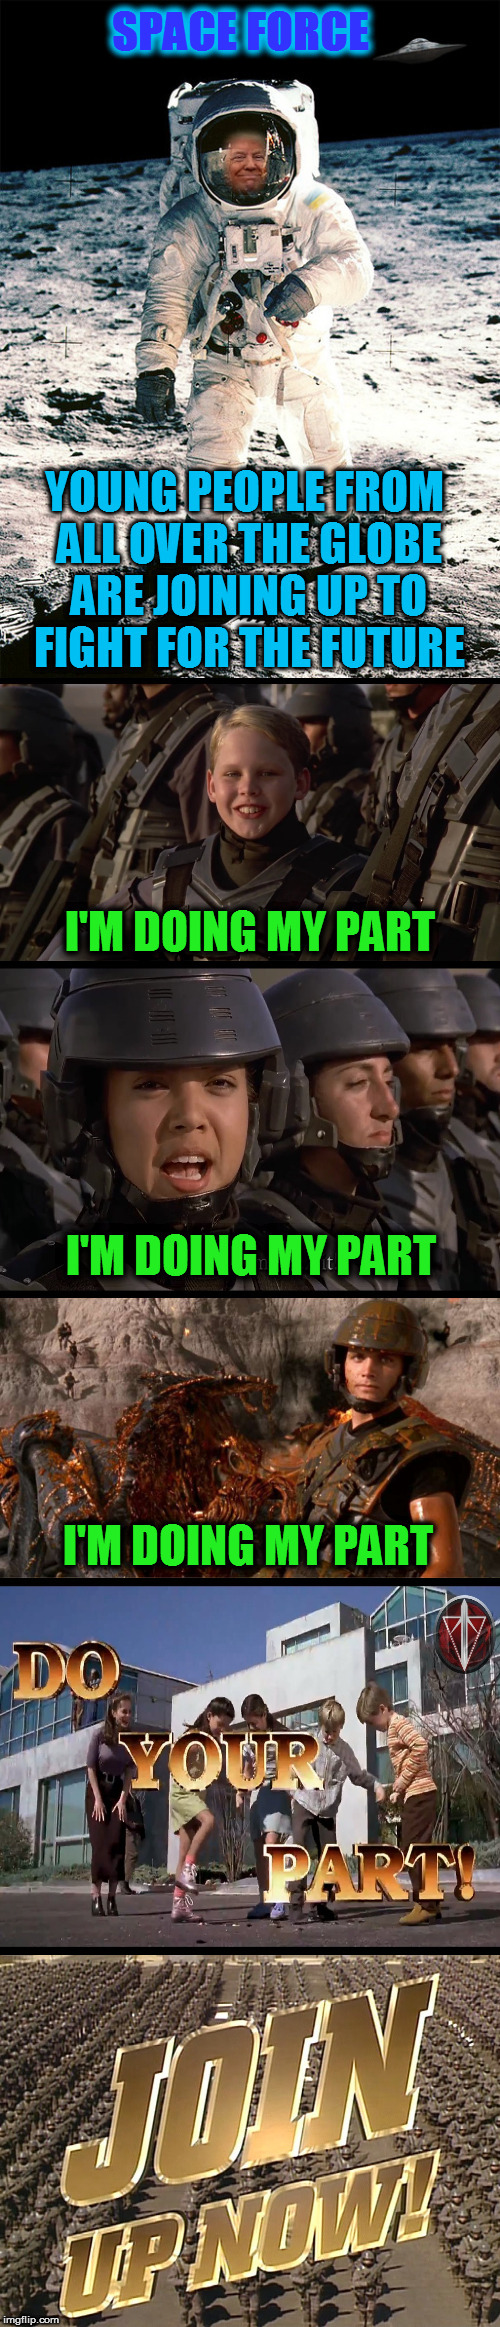 I'm Donald Trump and on behalf of the Space Force I approve this message! |  SPACE FORCE; YOUNG PEOPLE FROM ALL OVER THE GLOBE ARE JOINING UP TO FIGHT FOR THE FUTURE; I'M DOING MY PART; I'M DOING MY PART; I'M DOING MY PART | image tagged in memes,space force,starship troopers,donald trump,just for fun,laughs | made w/ Imgflip meme maker